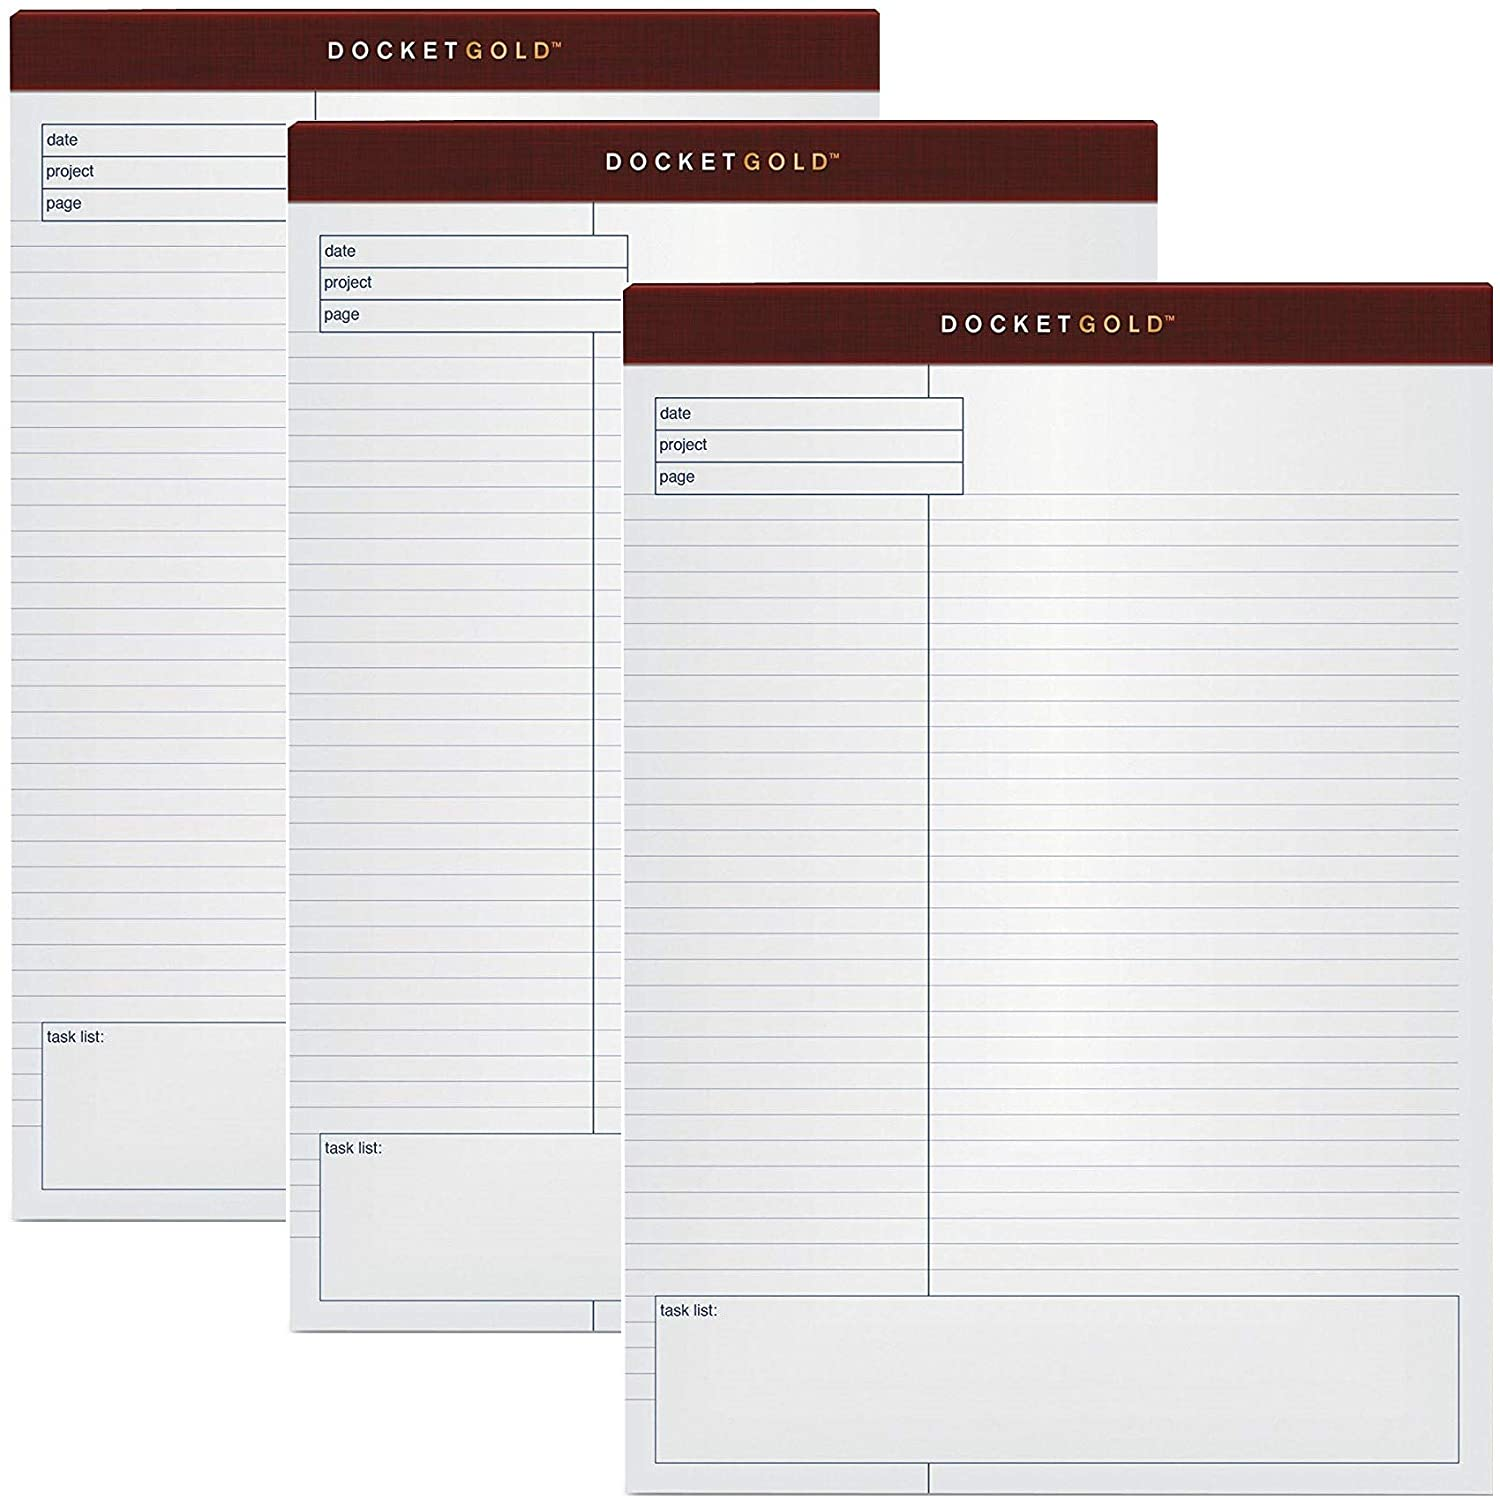 12 Pads per Pack TOPS Docket Gold Planning Pad 40-Sheet Pads Wide Rule White 8.5 x 11.75 Inches